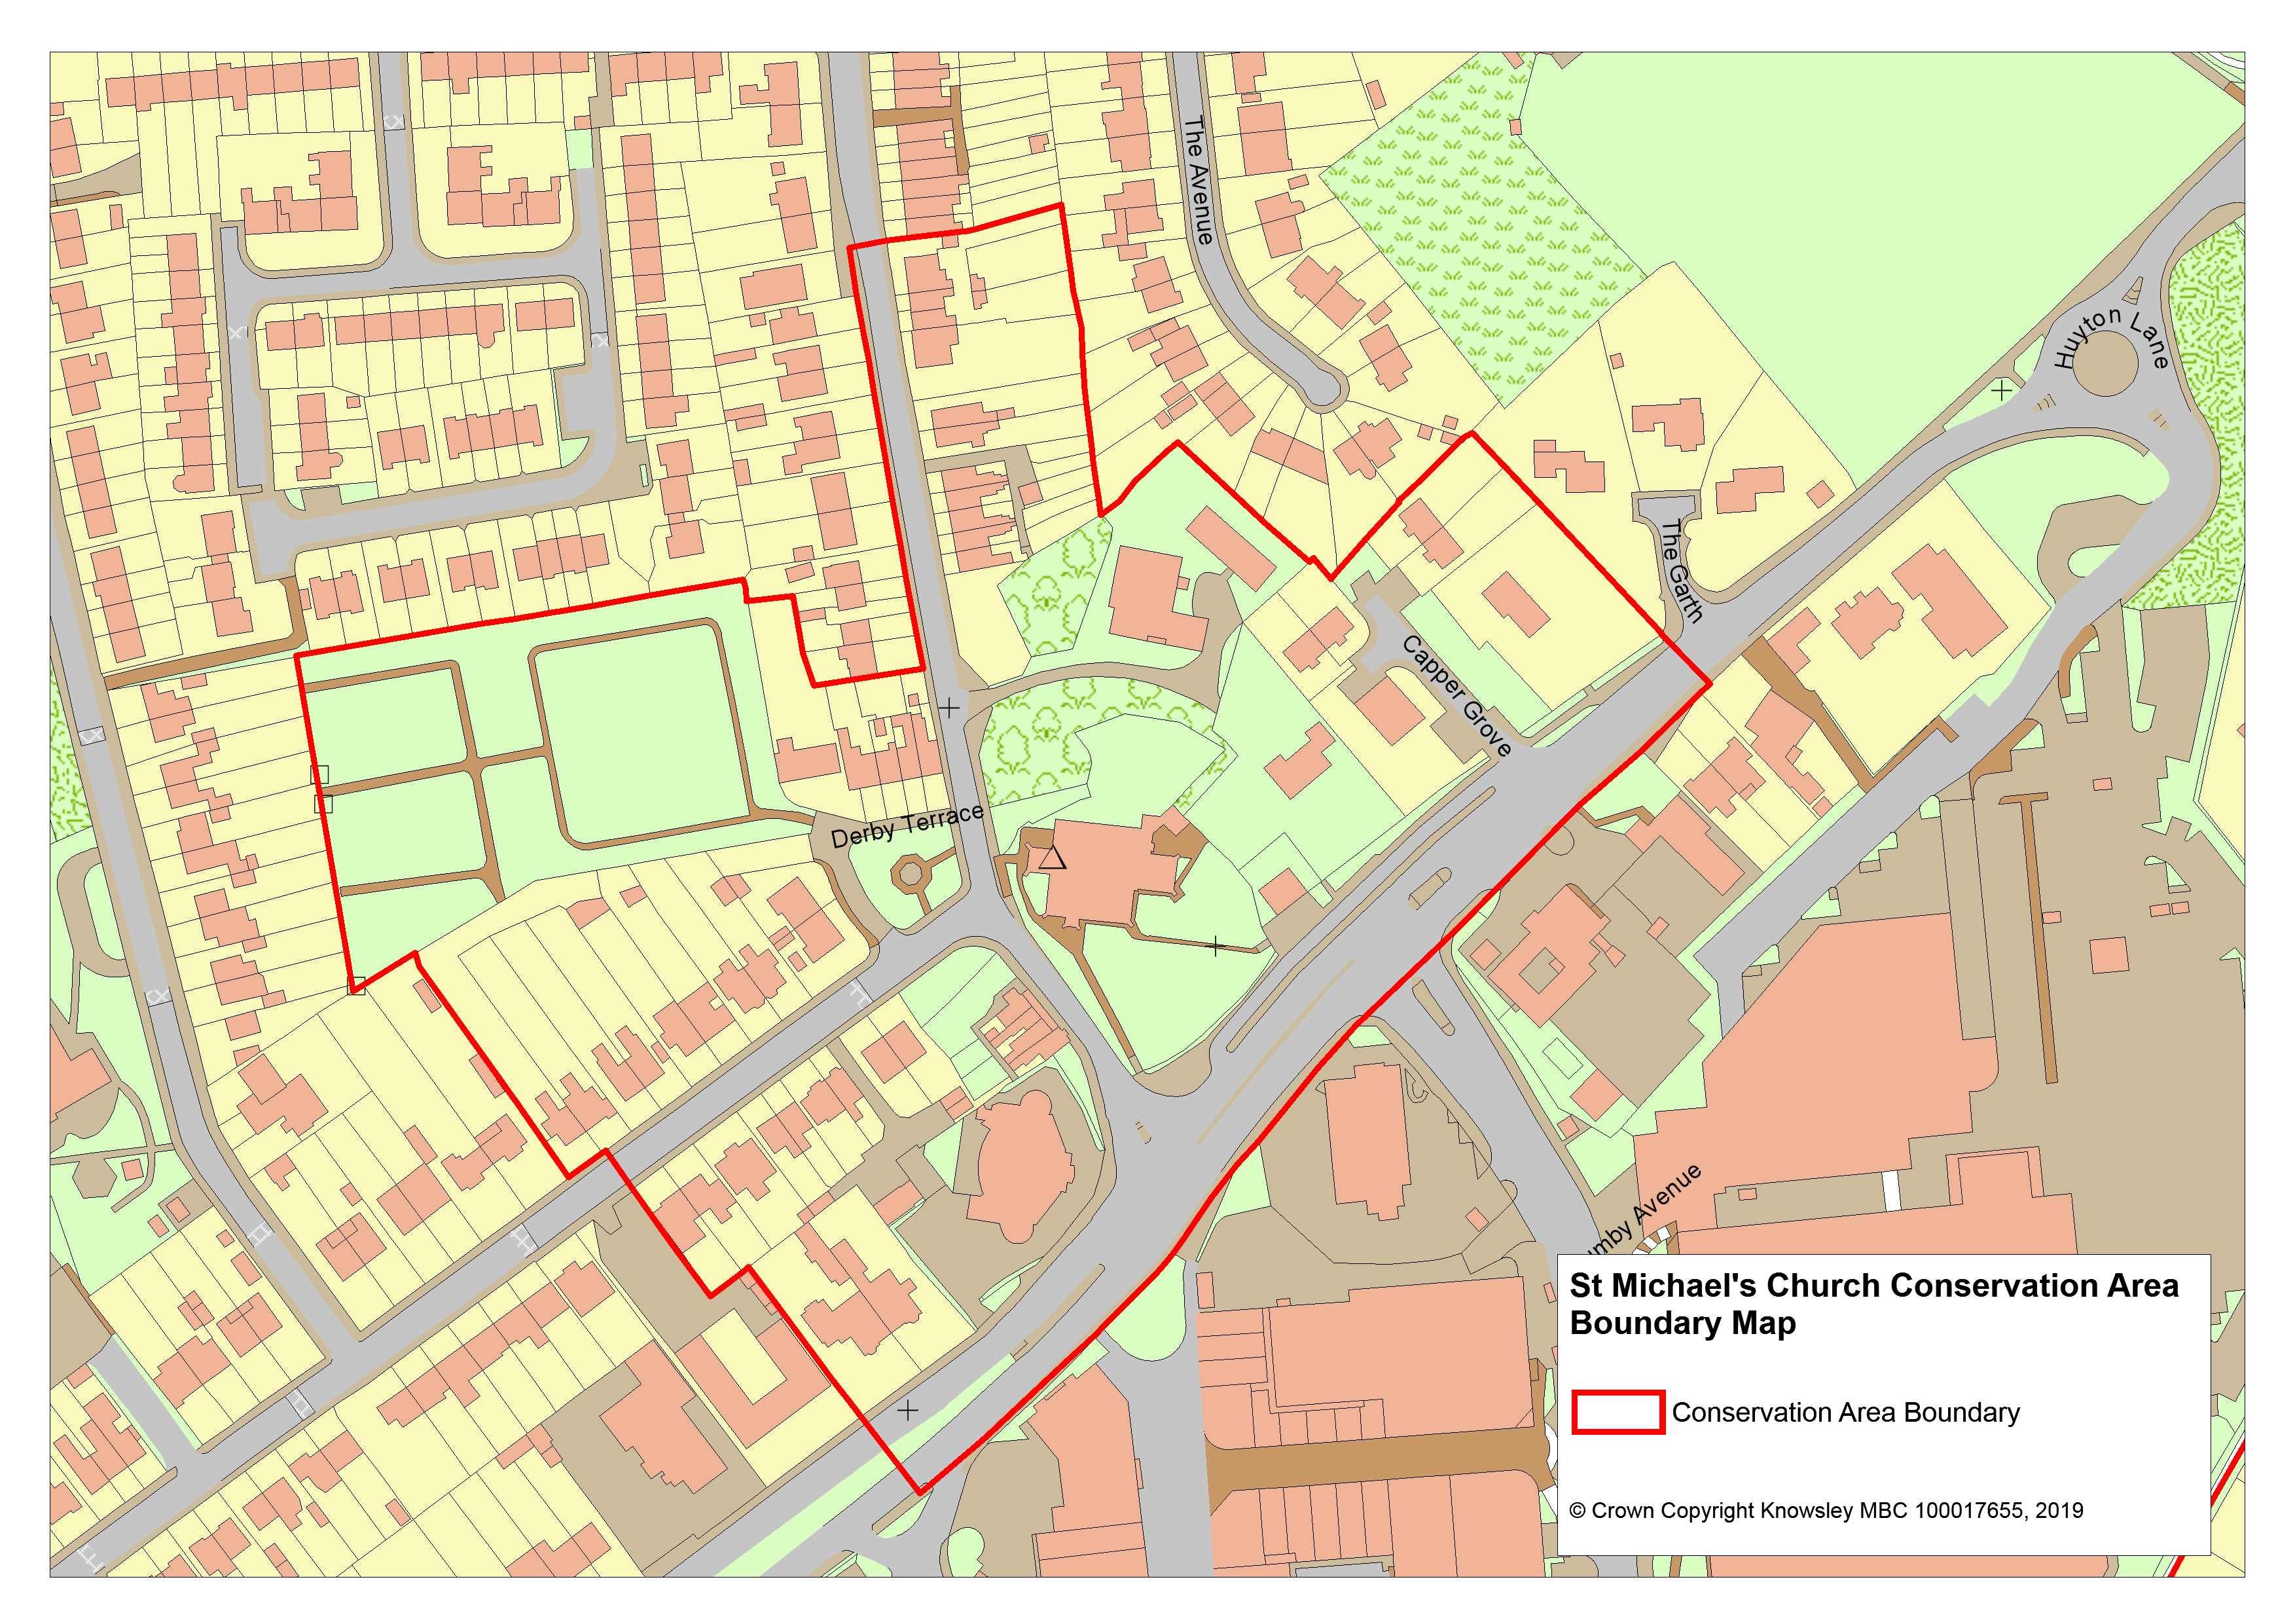 Liverpool City Council Boundary Map